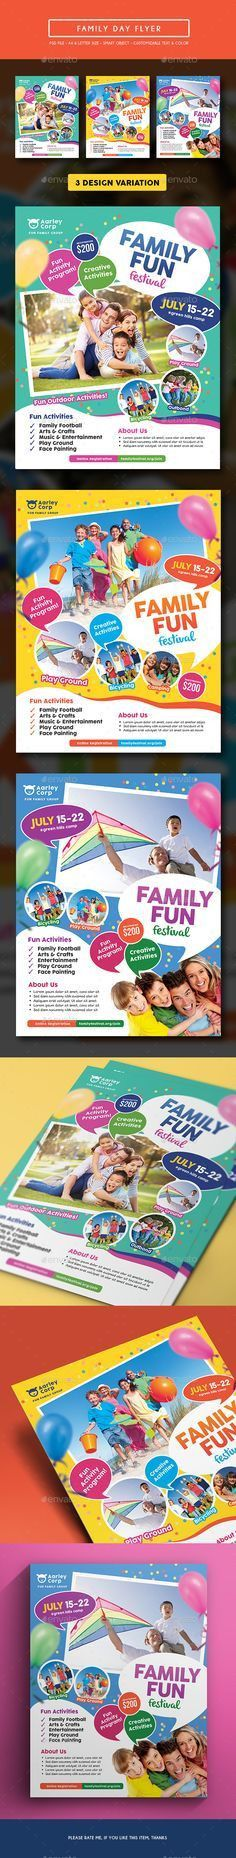 Alternative Family Fun Day Flyers Template PSD | Buy and Download ...